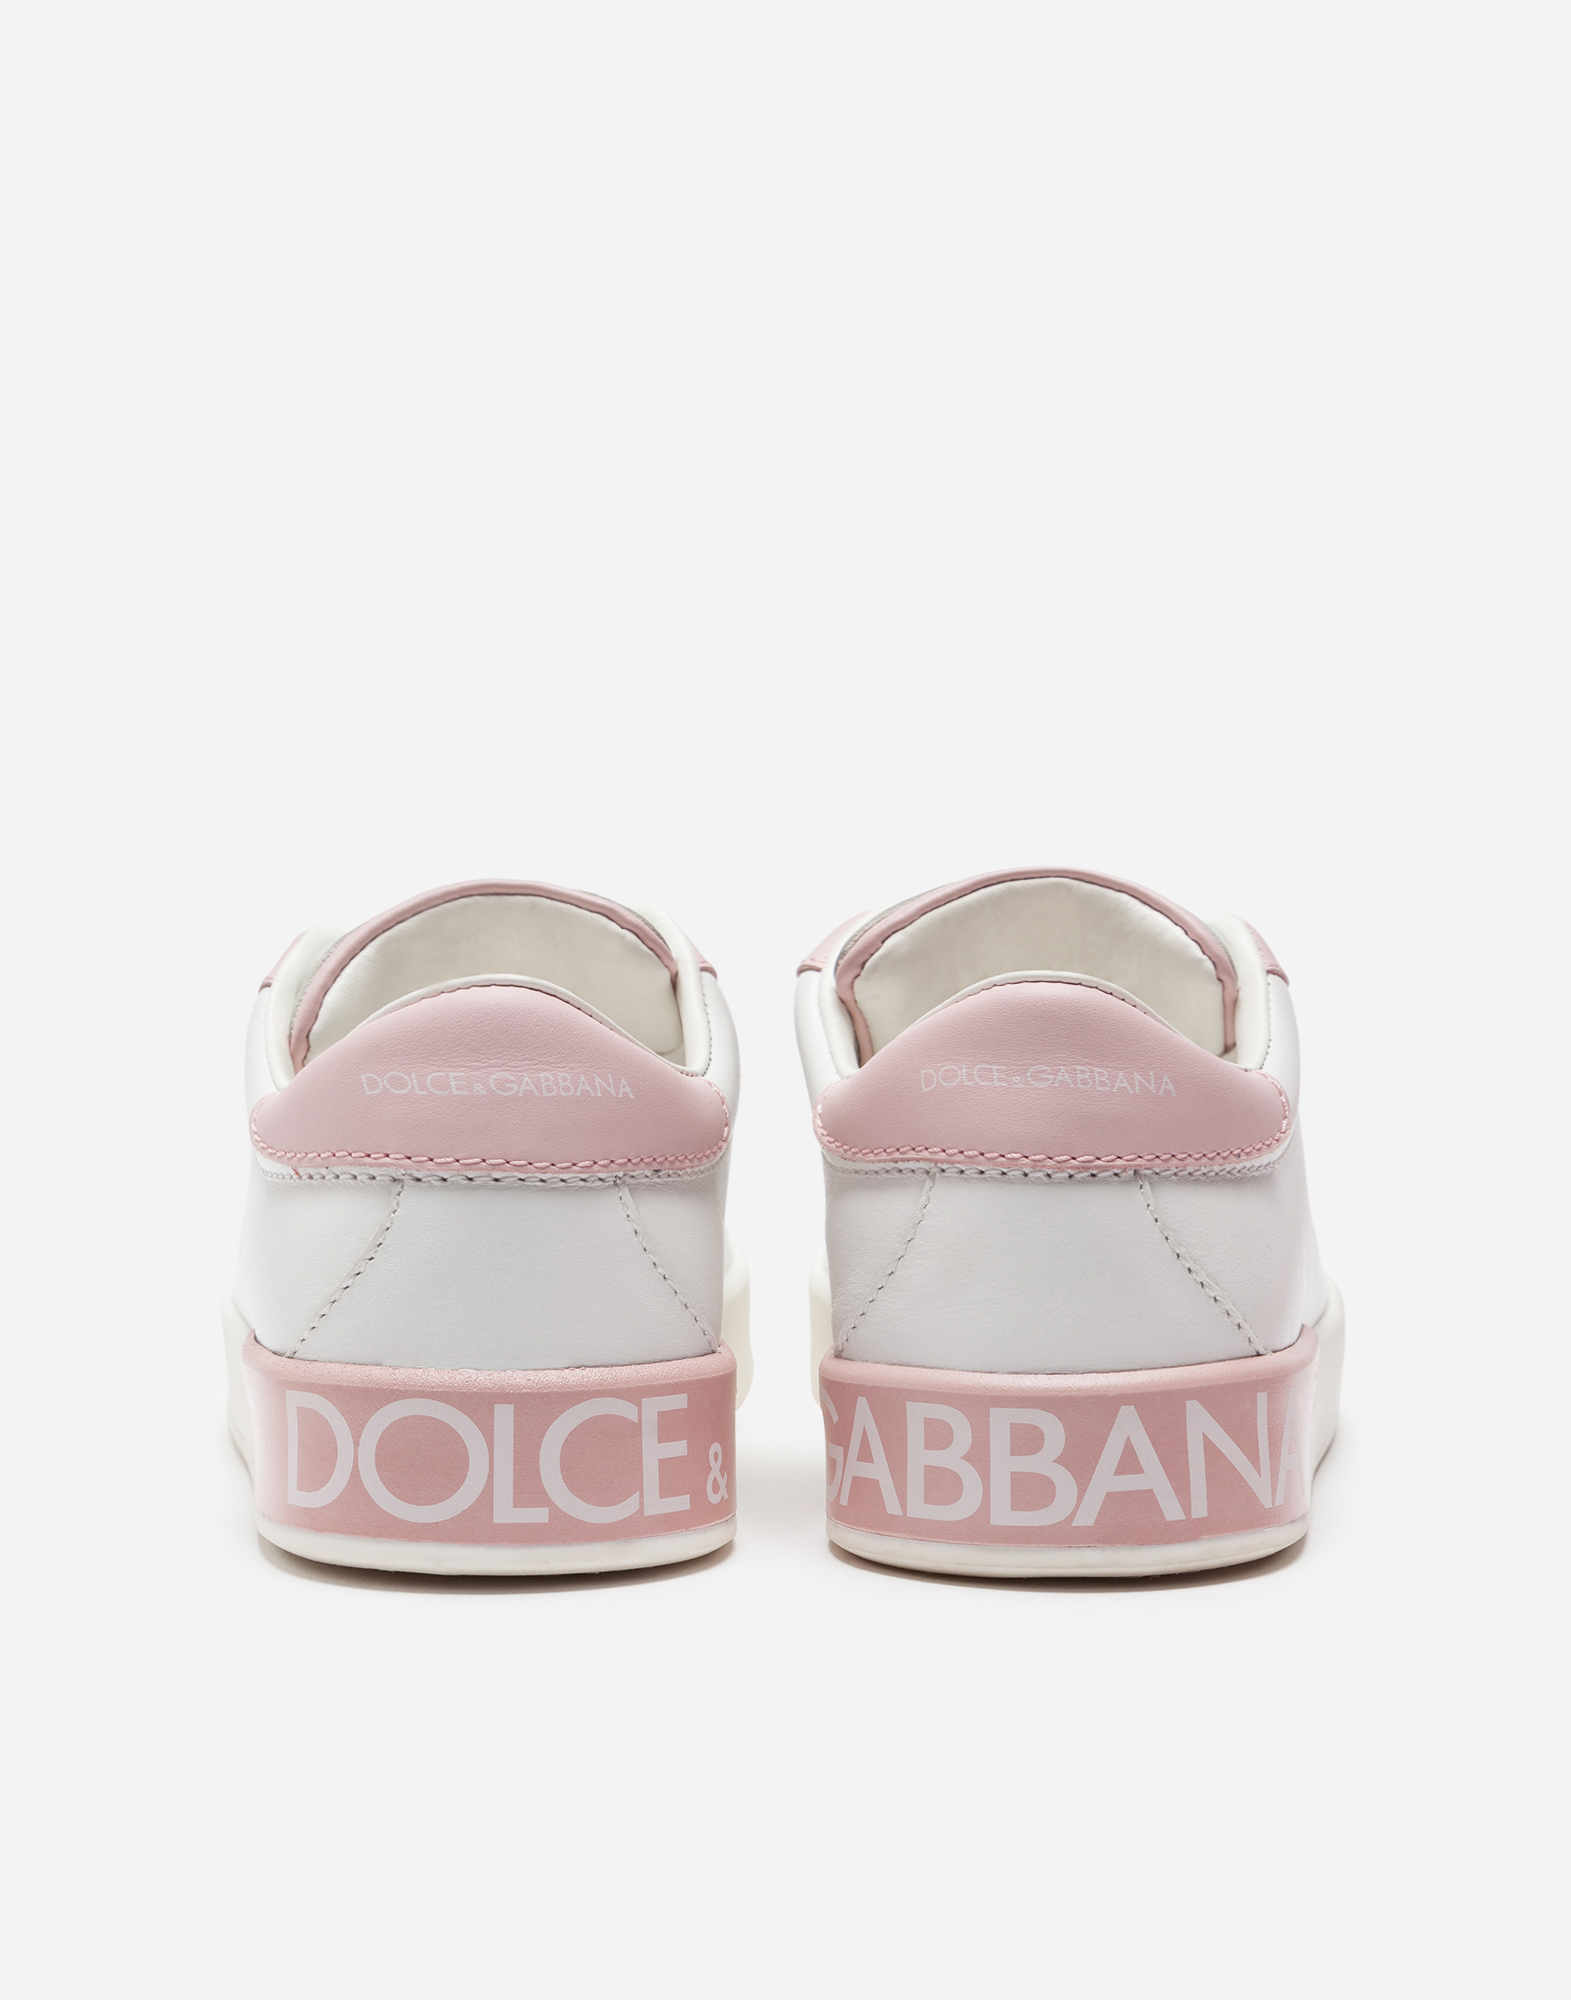 Dolce & Gabbana LEATHER SNEAKERS